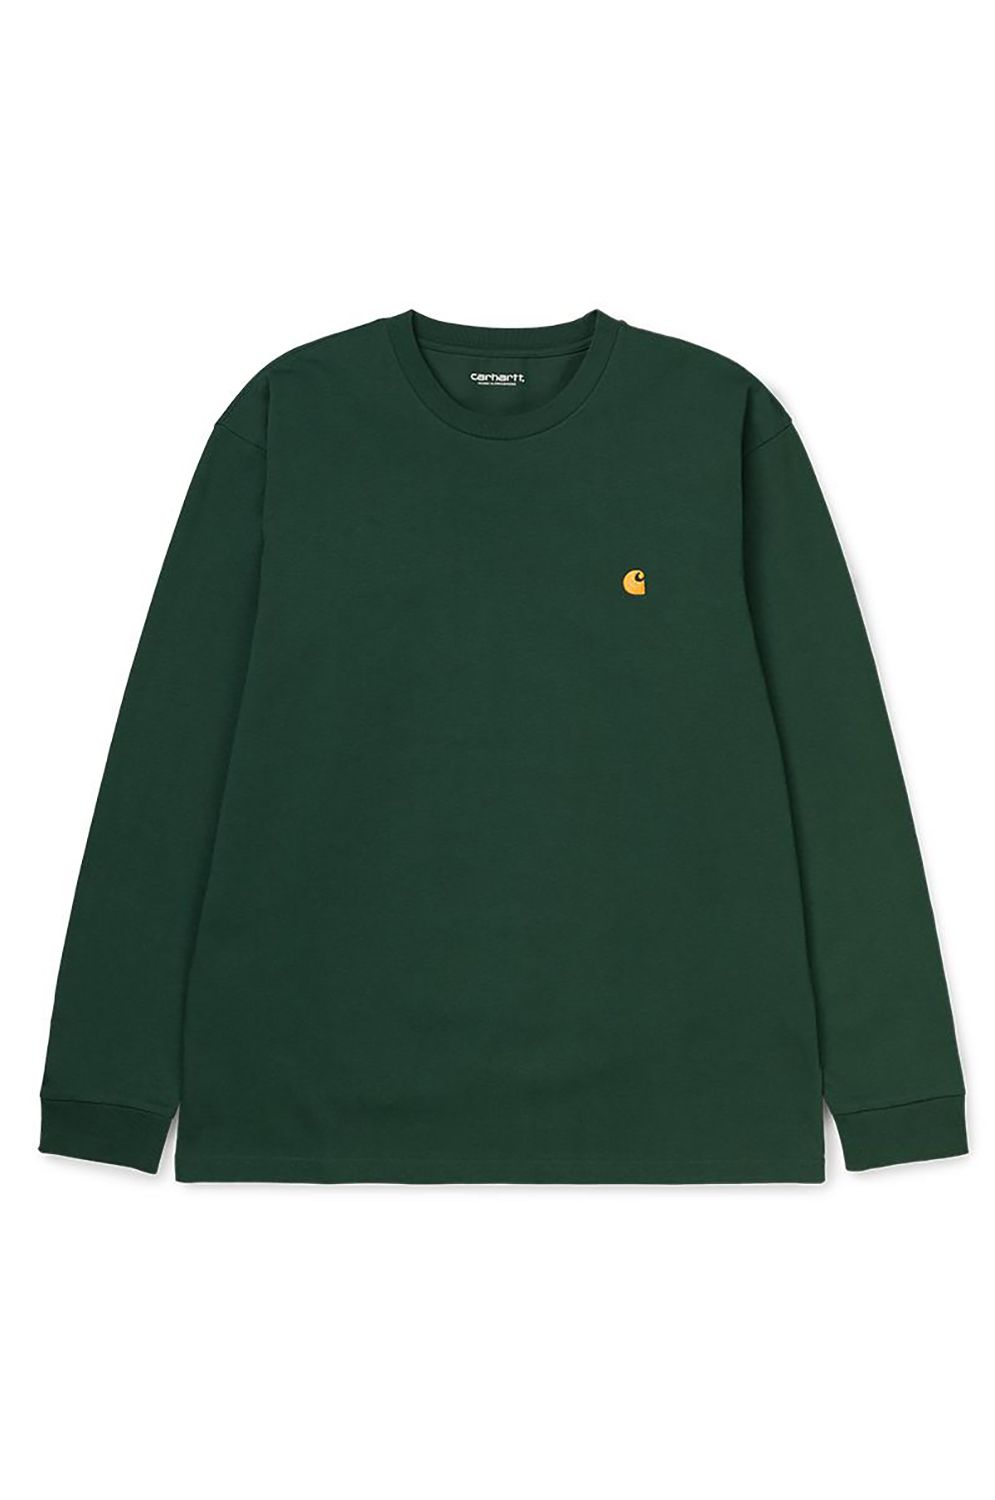 Carhartt WIP L-Sleeve L/S CHASE T-SHIRT Bottle Green/Gold